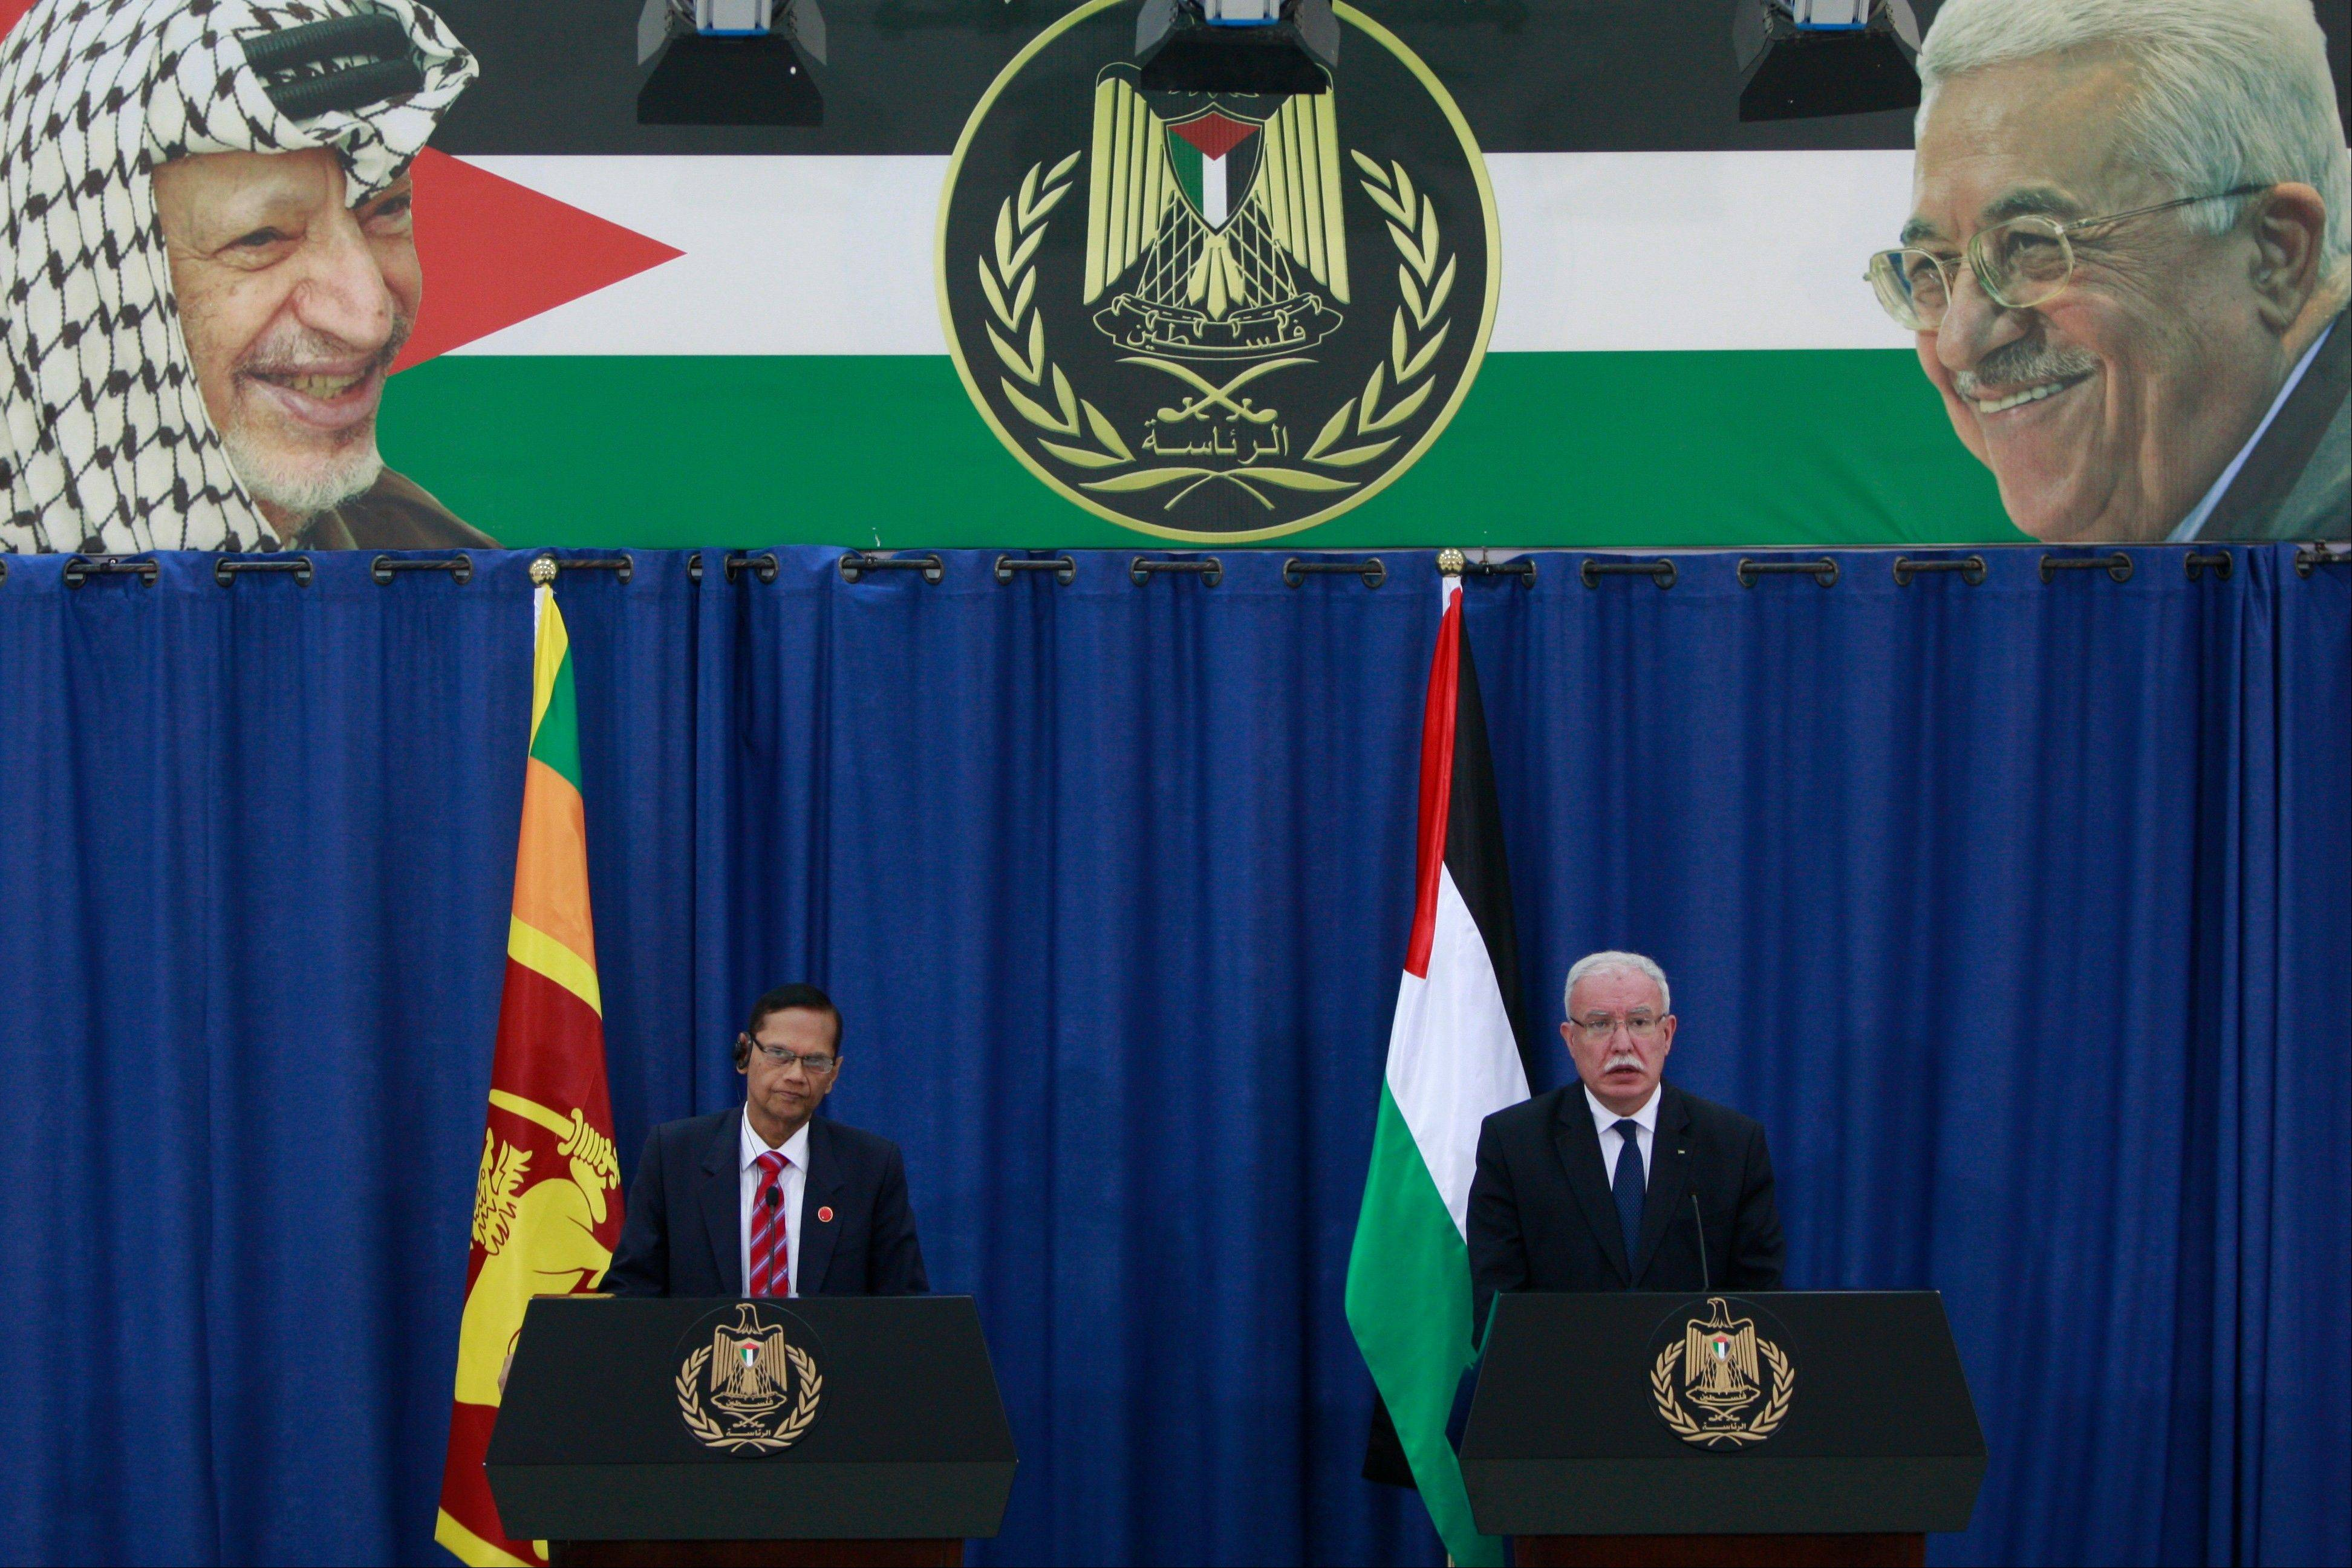 Sri Lanka�s foreign minister Gamini Peiris, left, with his Palestinian counterpart Riad al-Malki during a joint press conference in the West Bank city of Ramallah, Monday. Portraits of the late Palestinian leader, Yasser Arafat, left, and Palestinian President Mahmoud Abbas, right, are seen in a banner at top.